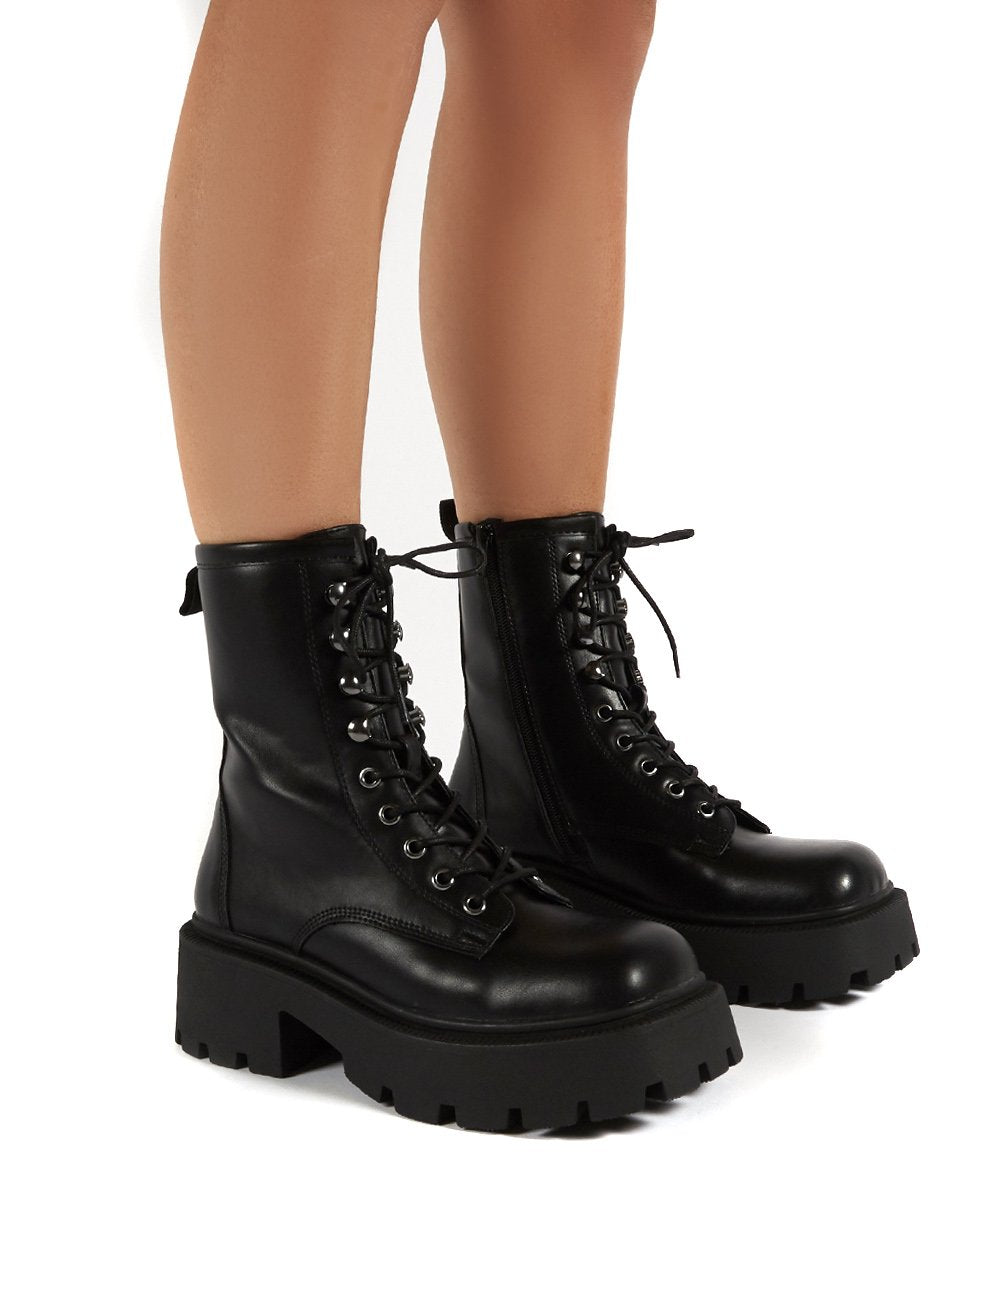 Leader Black Lace Up Chunky Sole Biker Boots - Us 5